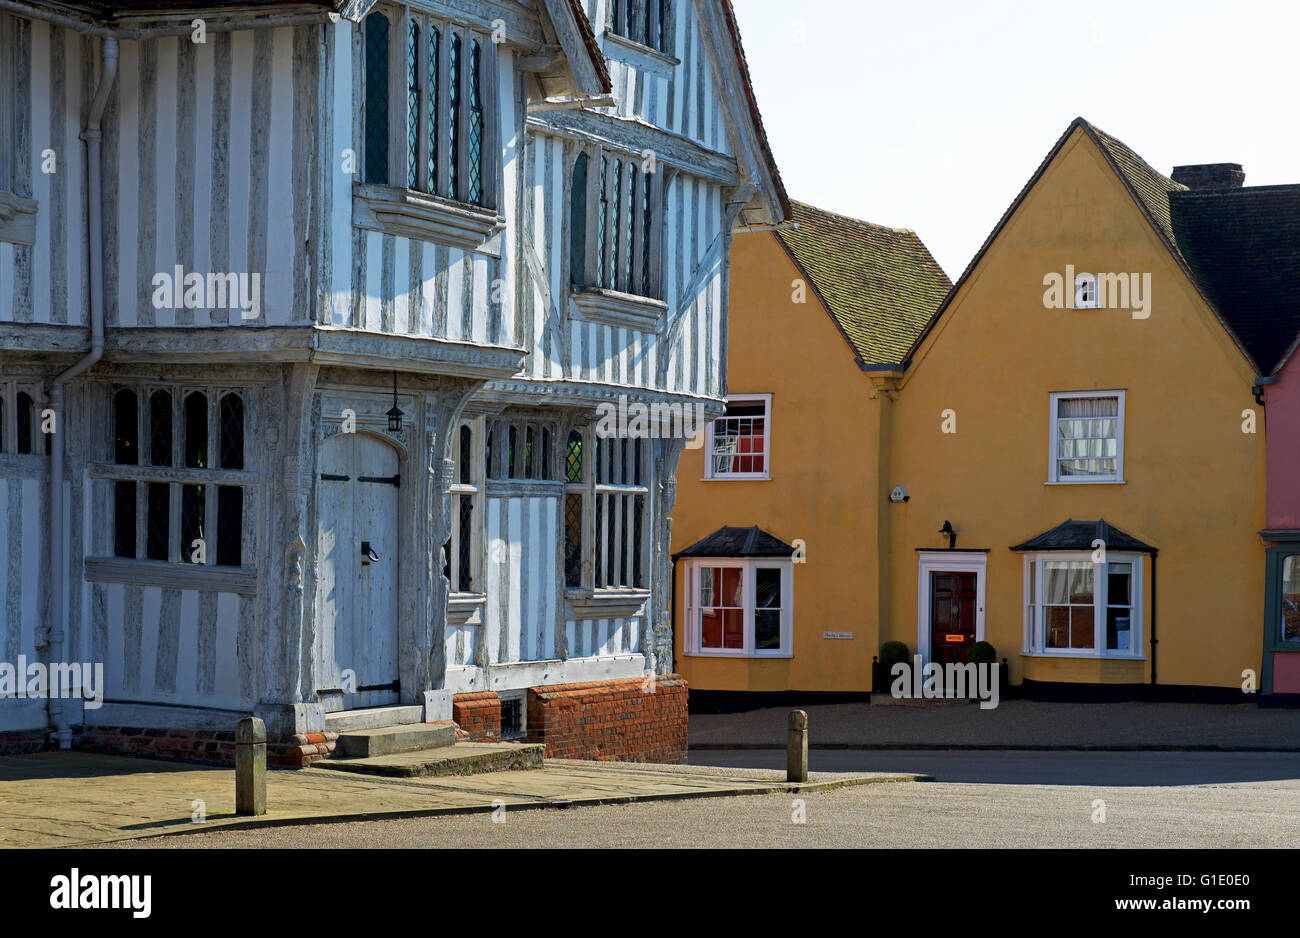 The Guildhall, a National Trust property, in the village of Lavenham, Suffolk, England UK - Stock Image